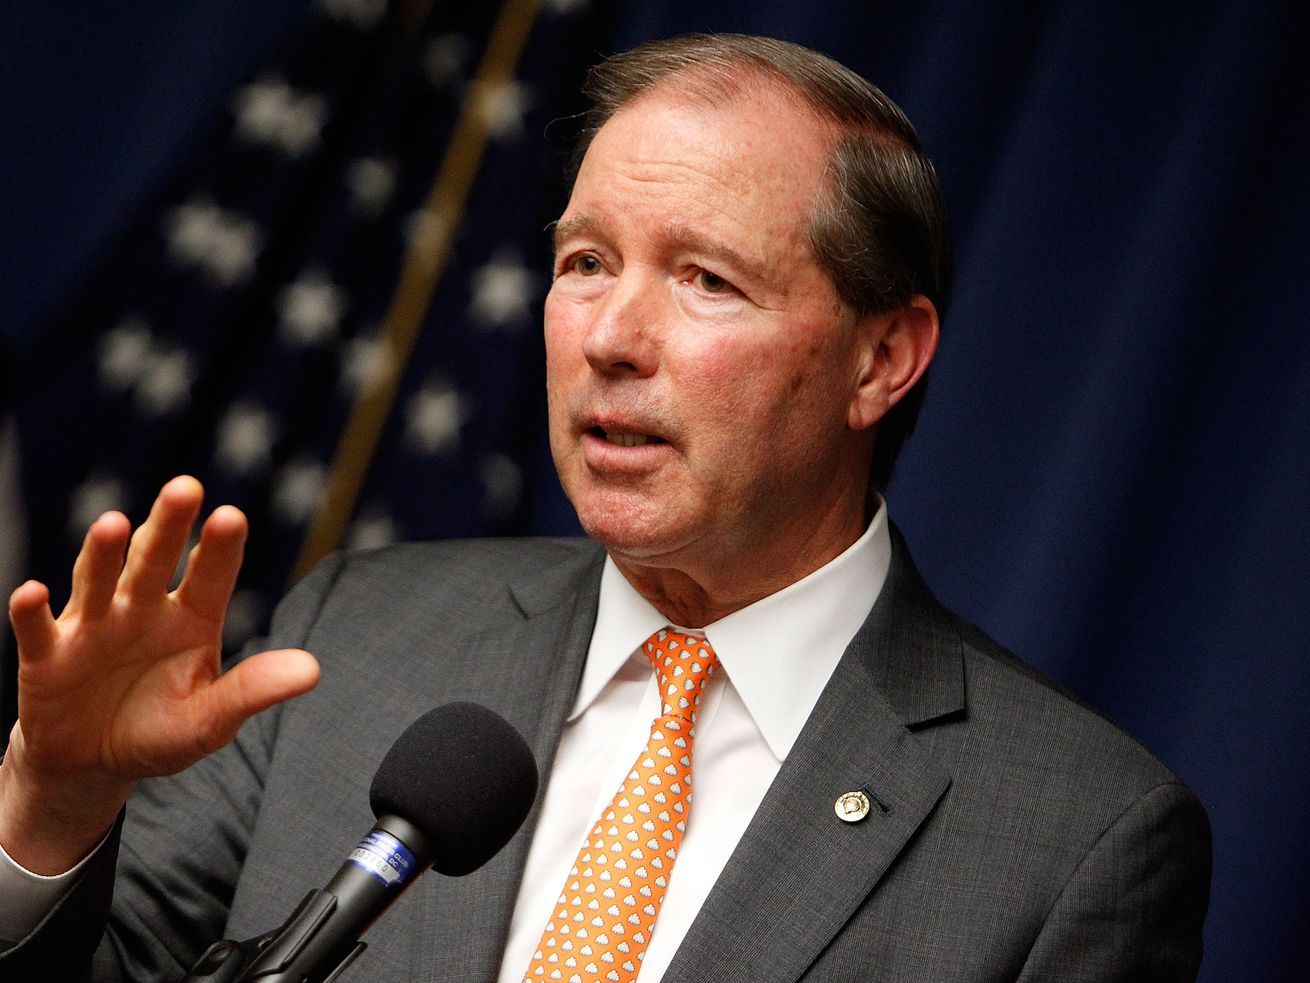 Sen. Tom Udall (D-NM) speaks at a forum about campaign finance reform in 2016.